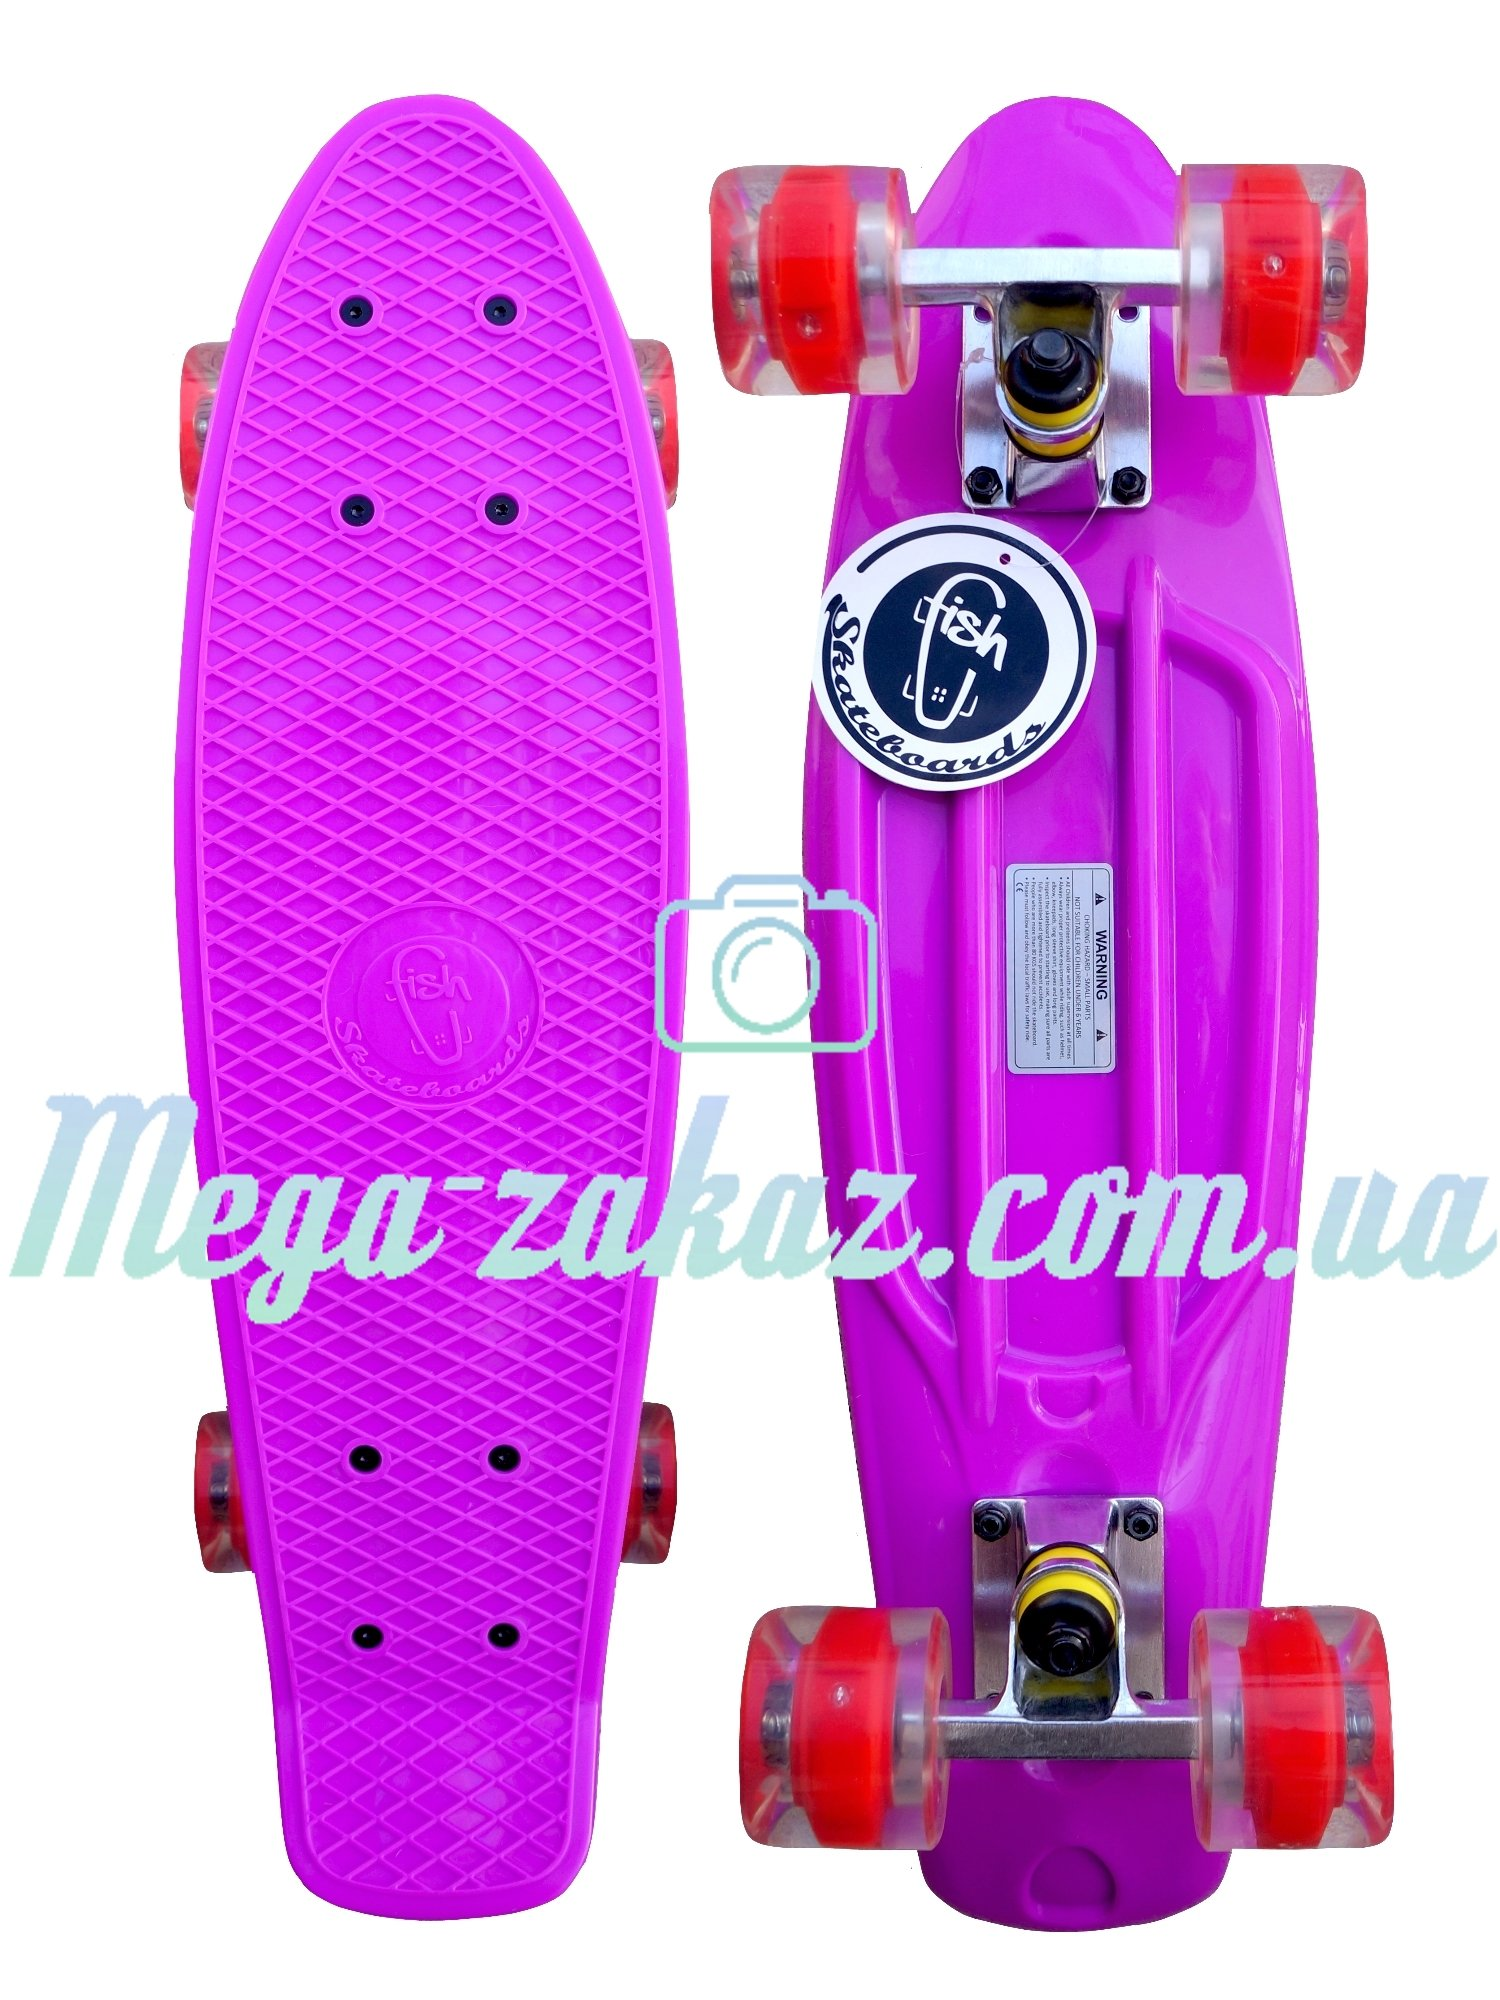 https://mega-zakaz.com.ua/images/upload/penny%20board%20violet-red%20общая%20(2)ZAKAZ.jpg